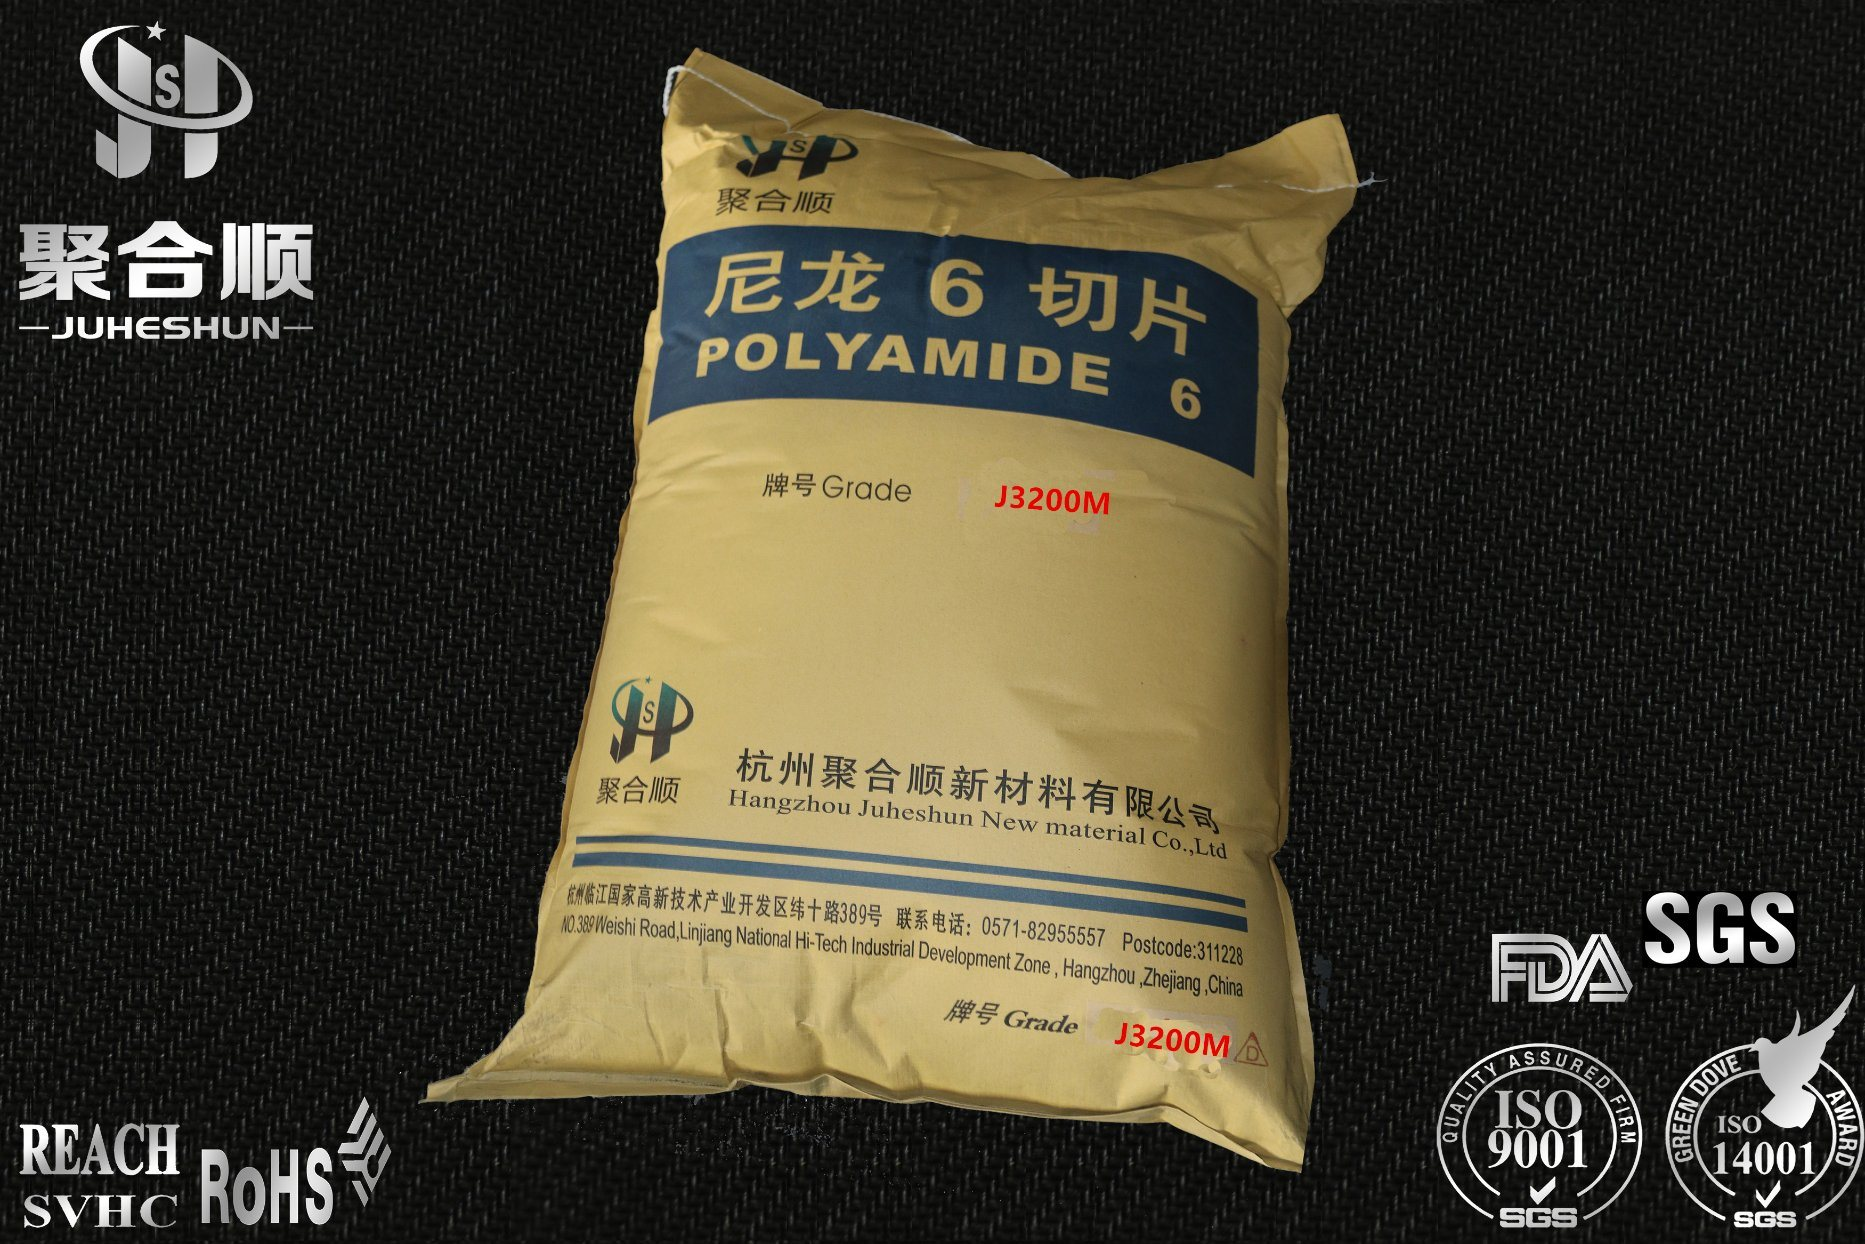 J3200m/PA6/Nylon 6 Chips/Polyamide 6 Granules/Pellets/Film-Graded Nylon 6 Slice